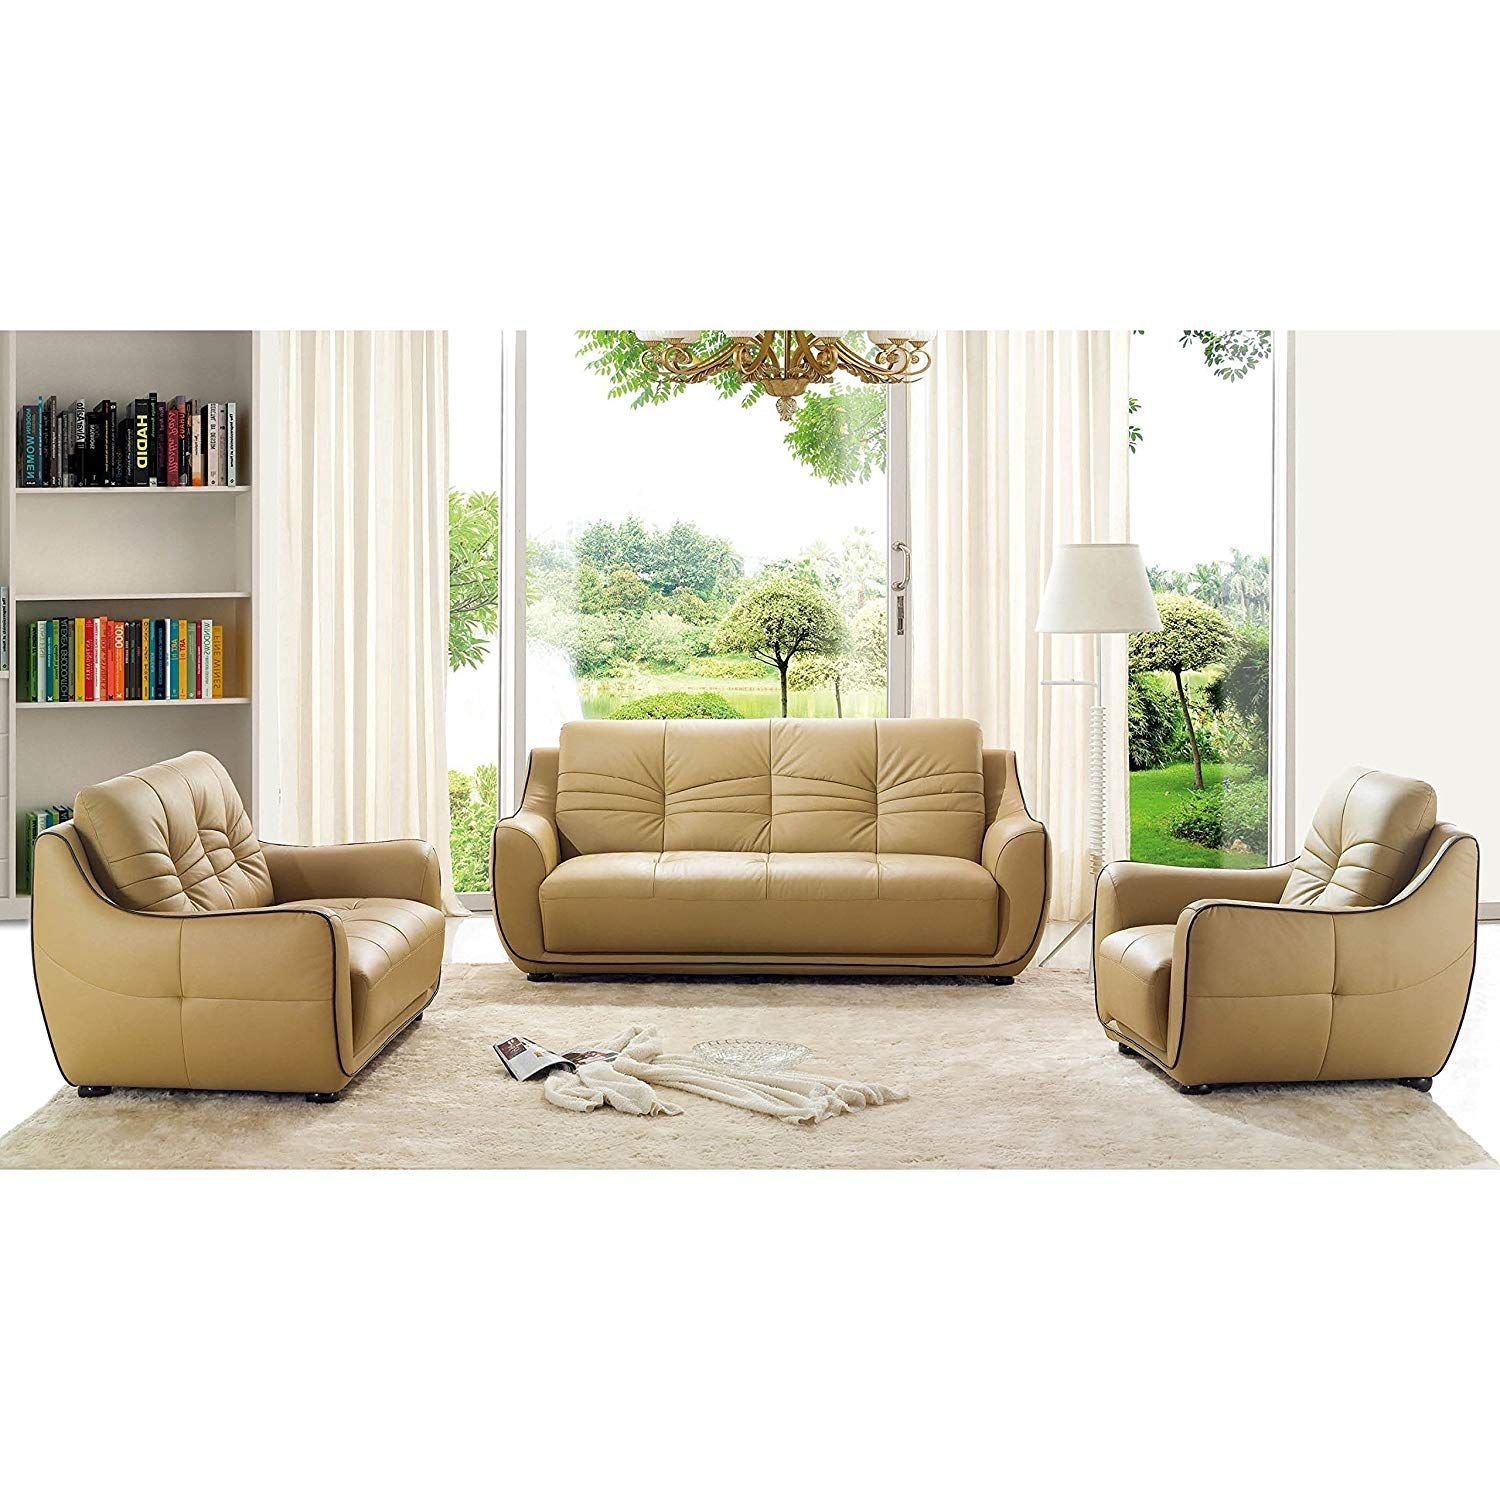 Luca Home Cappucino Sofa Loveseat And Chair Set Leather Living Room Set Sofa And Loveseat Set Living Room Leather